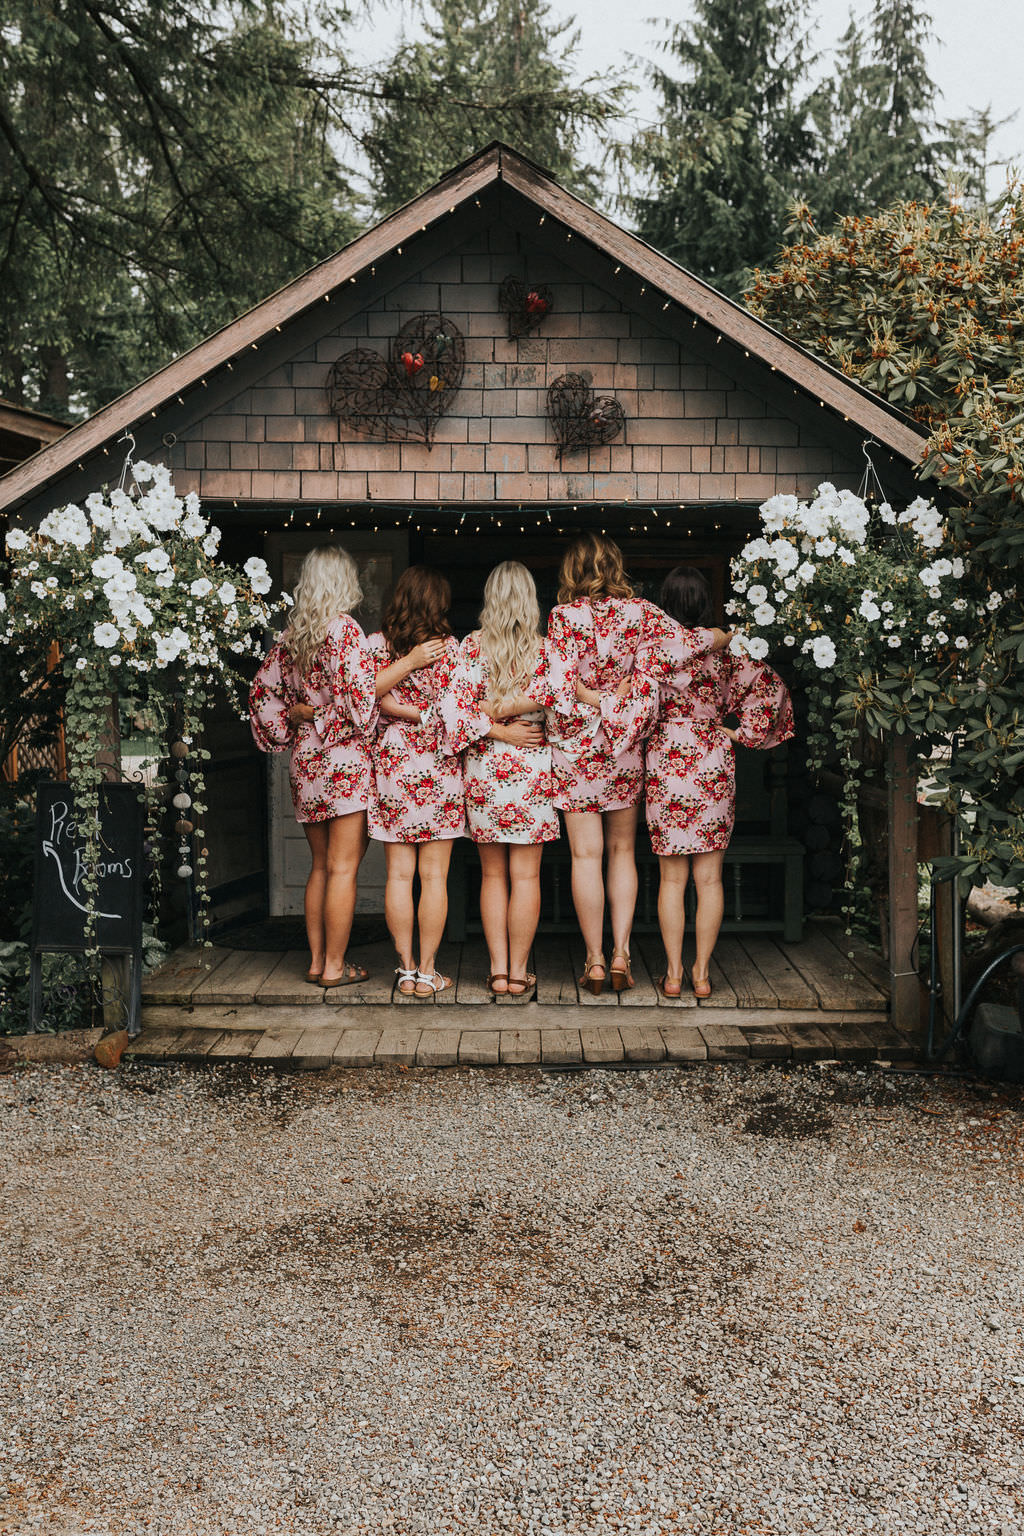 Bridesmaids Bride Dressing Gown Robes Floral Greenhouse Garden Washington Wedding Beginning and End Photography